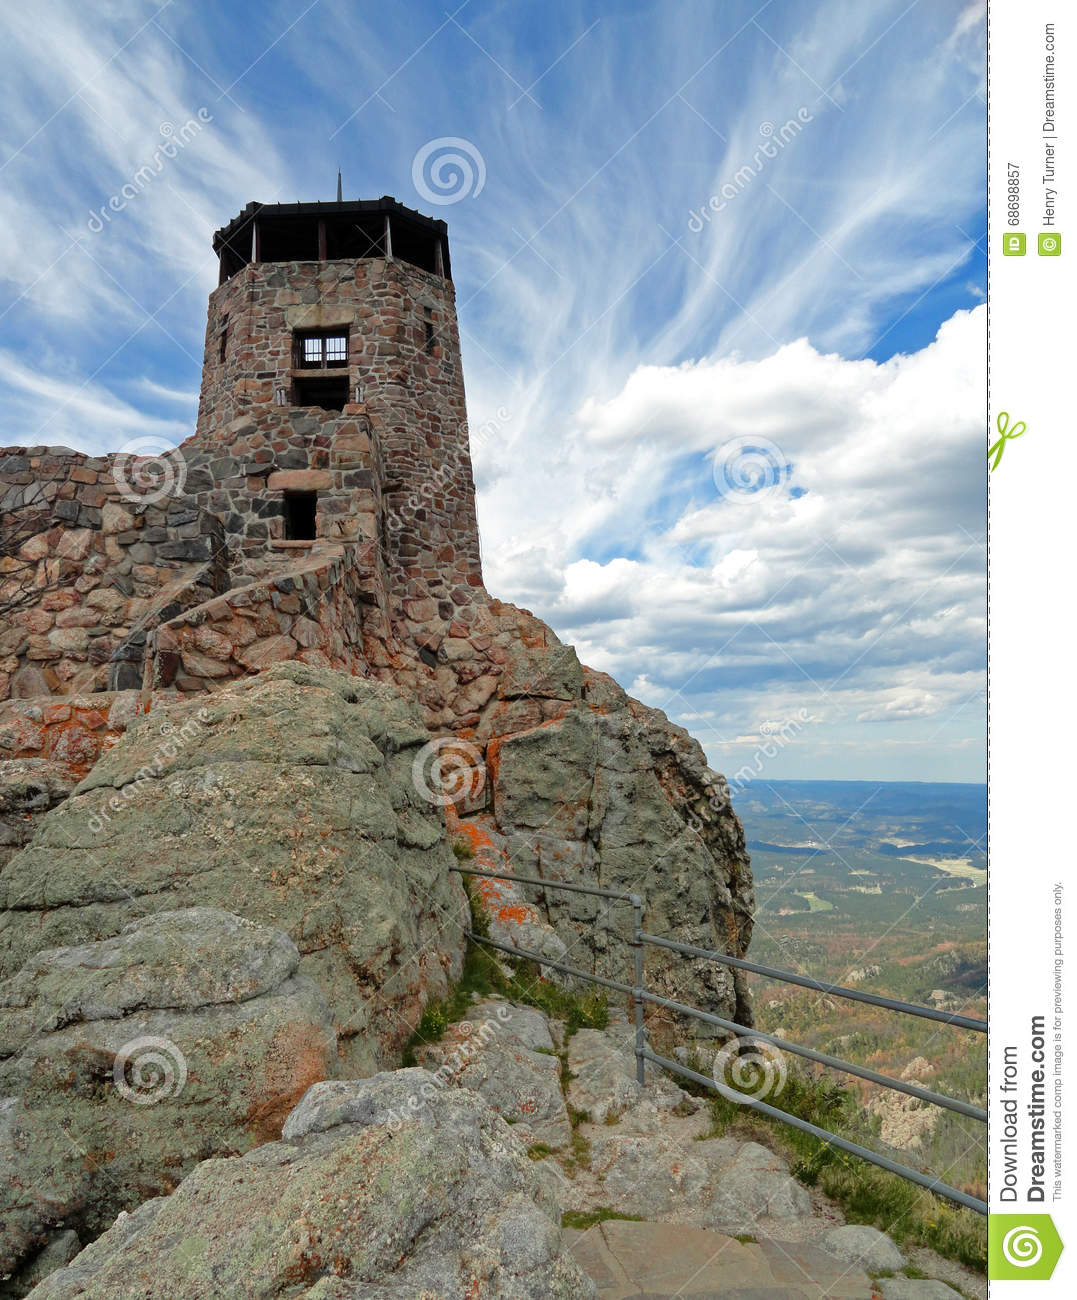 Black Elk Peak / Harney Peak Fire Lookout Tower in Custer State Park in Black Hills of South Dakota